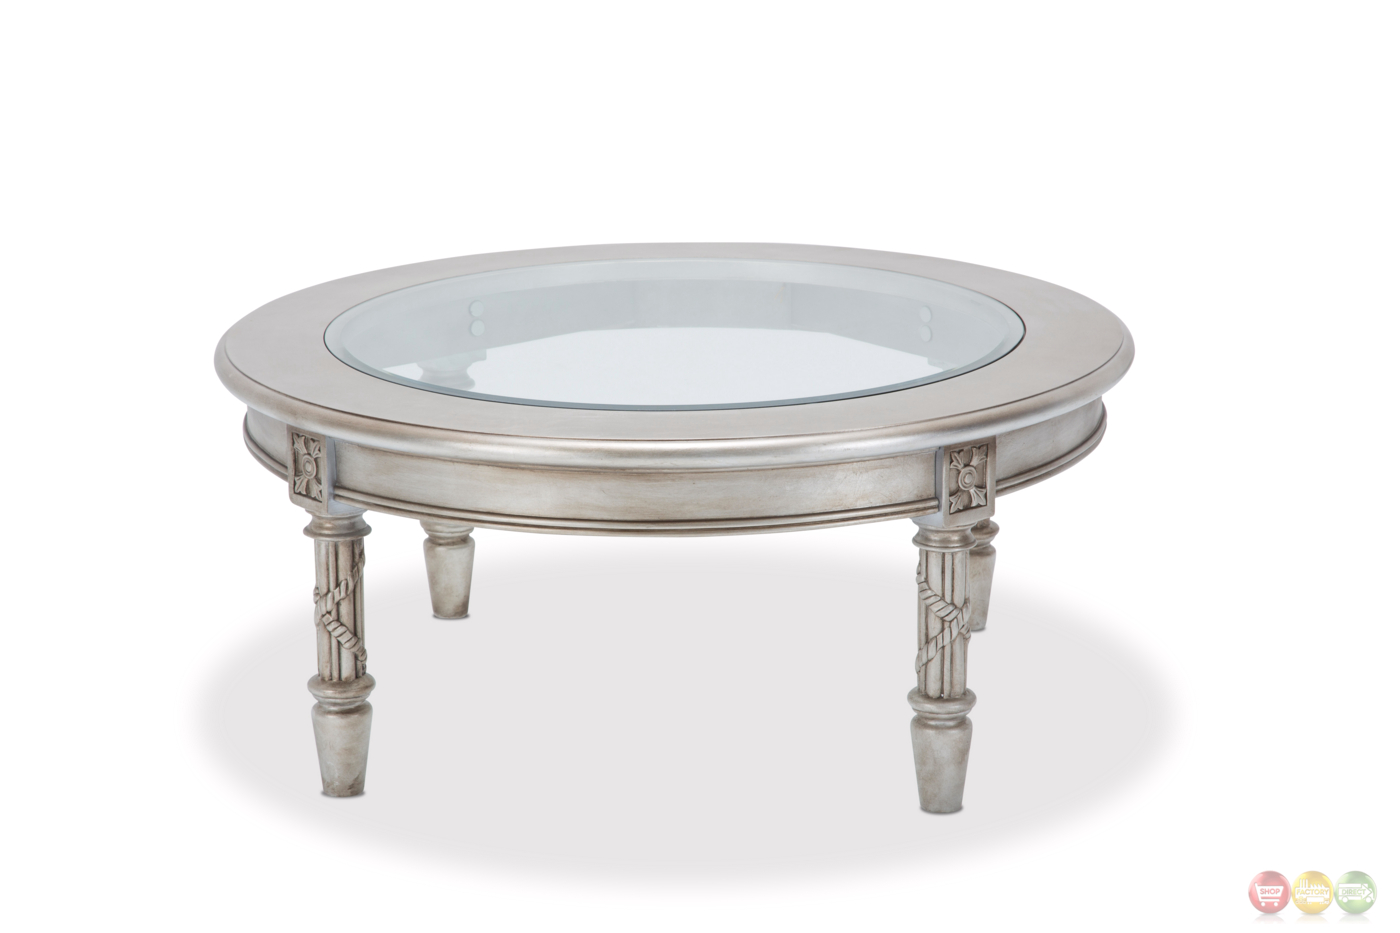 Luxury Traditional Ornate Glass Top Coffee Table In Platinum Finish